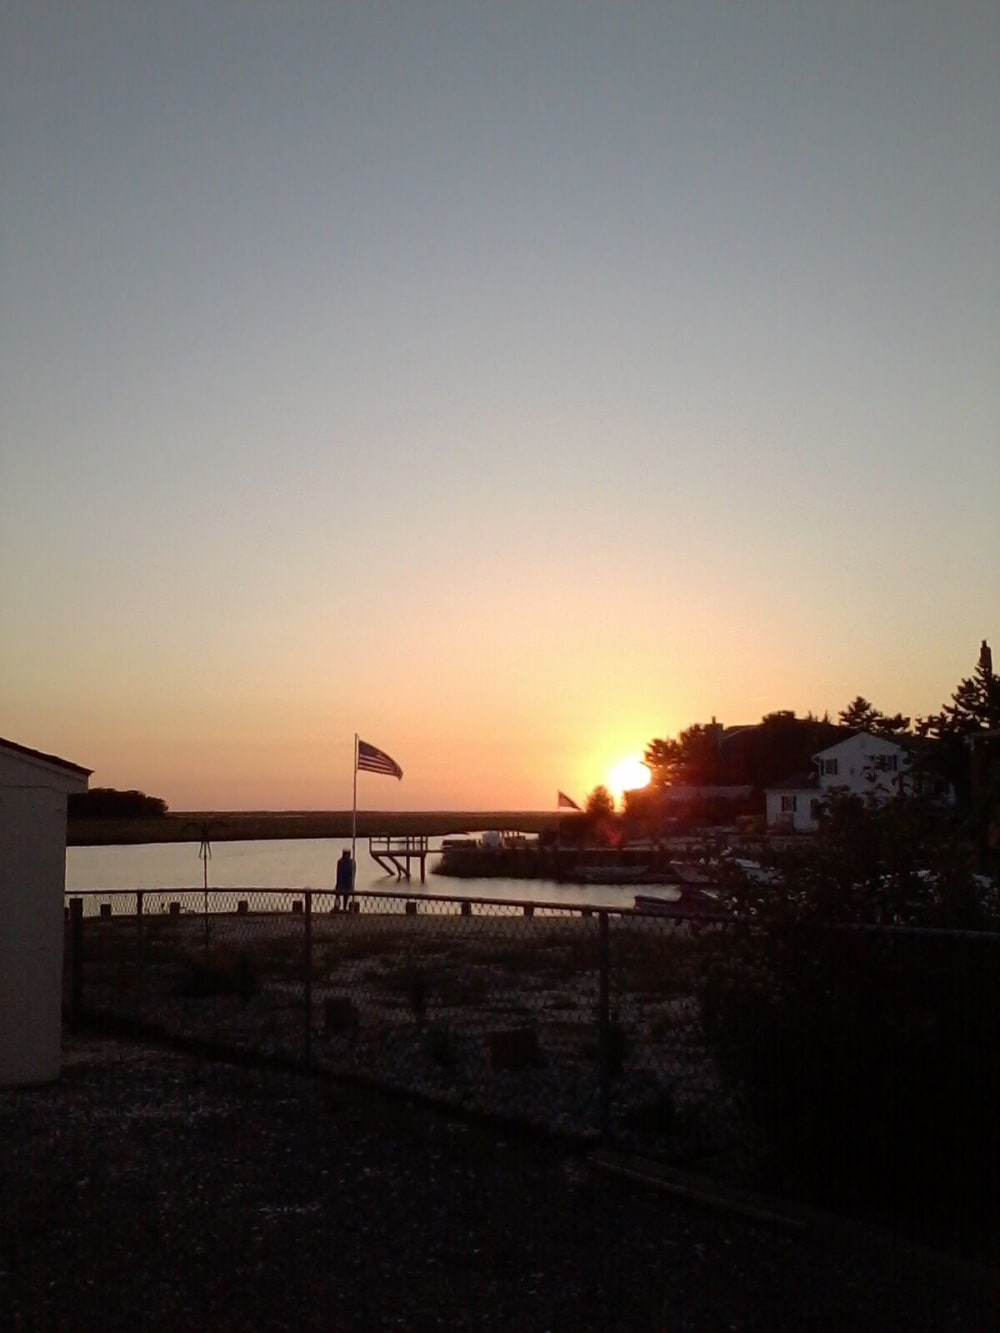 4TH OF JULY 2011 IN TUCKERTON